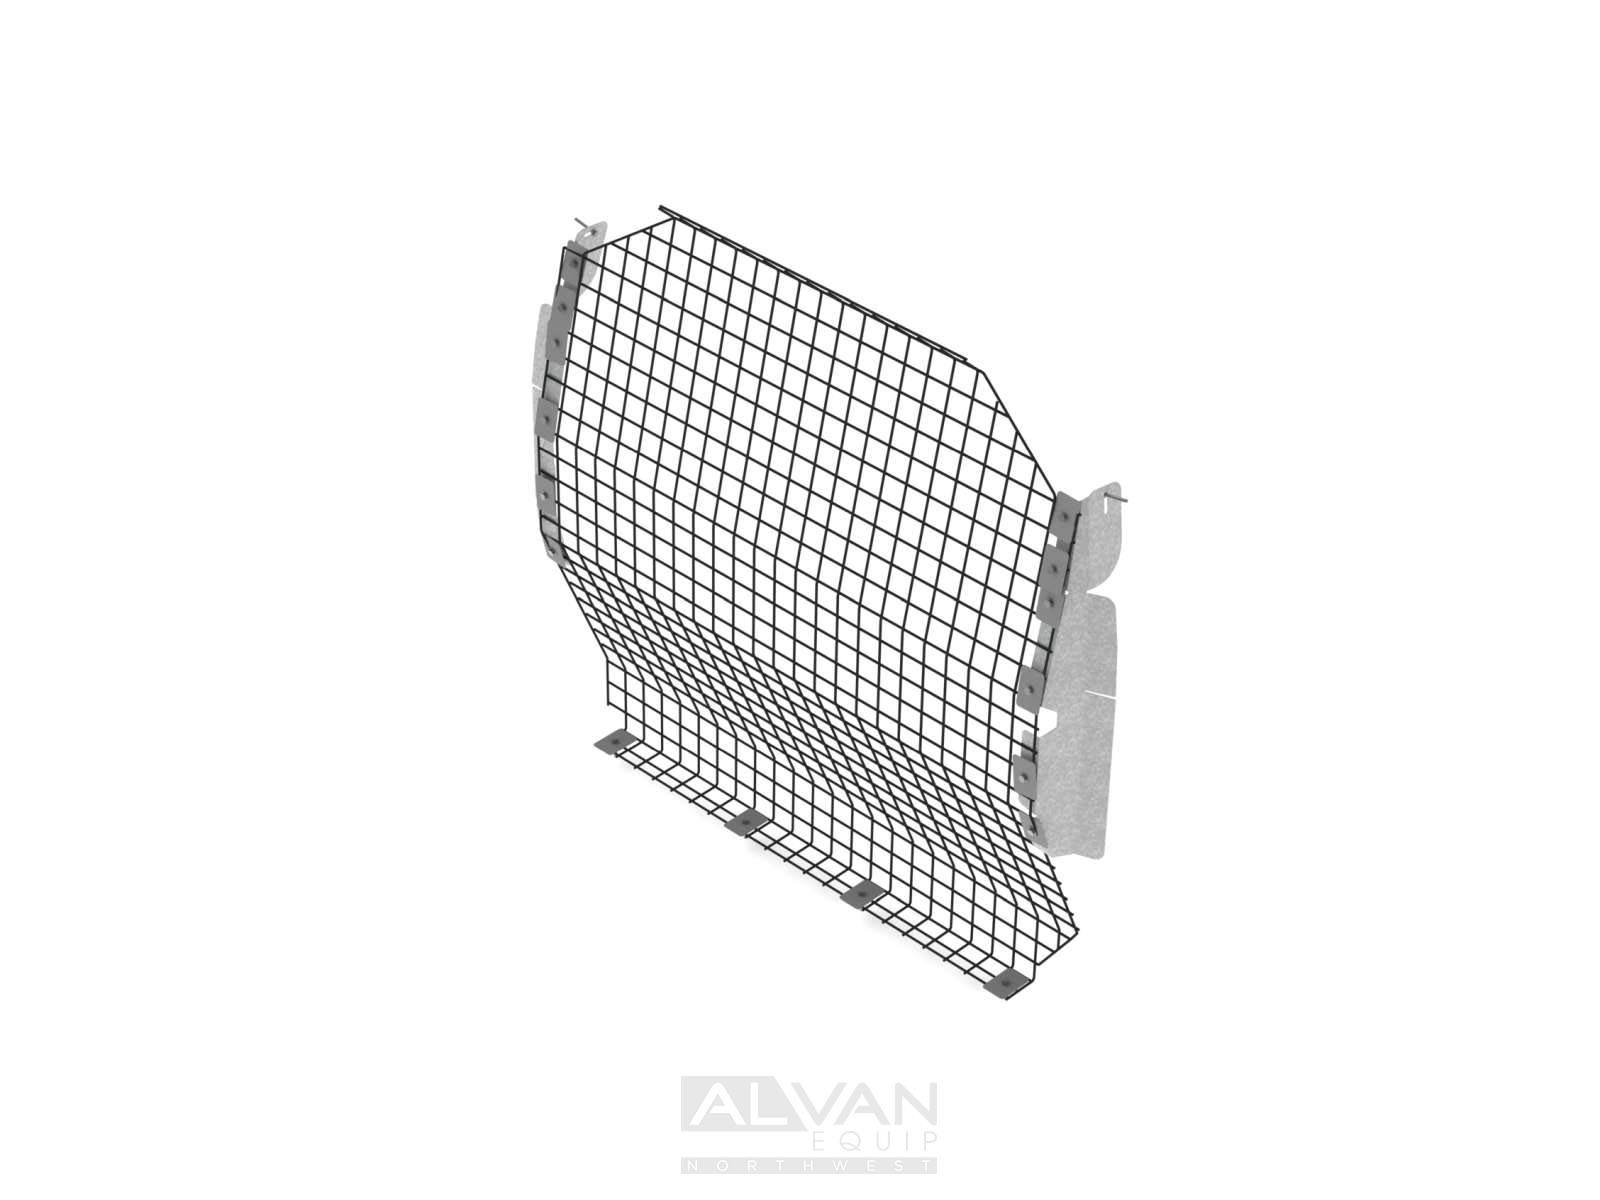 Van Bulkhead Partition, Contoured, Wire Mesh, Nissan NV200/City Express -  C13-W